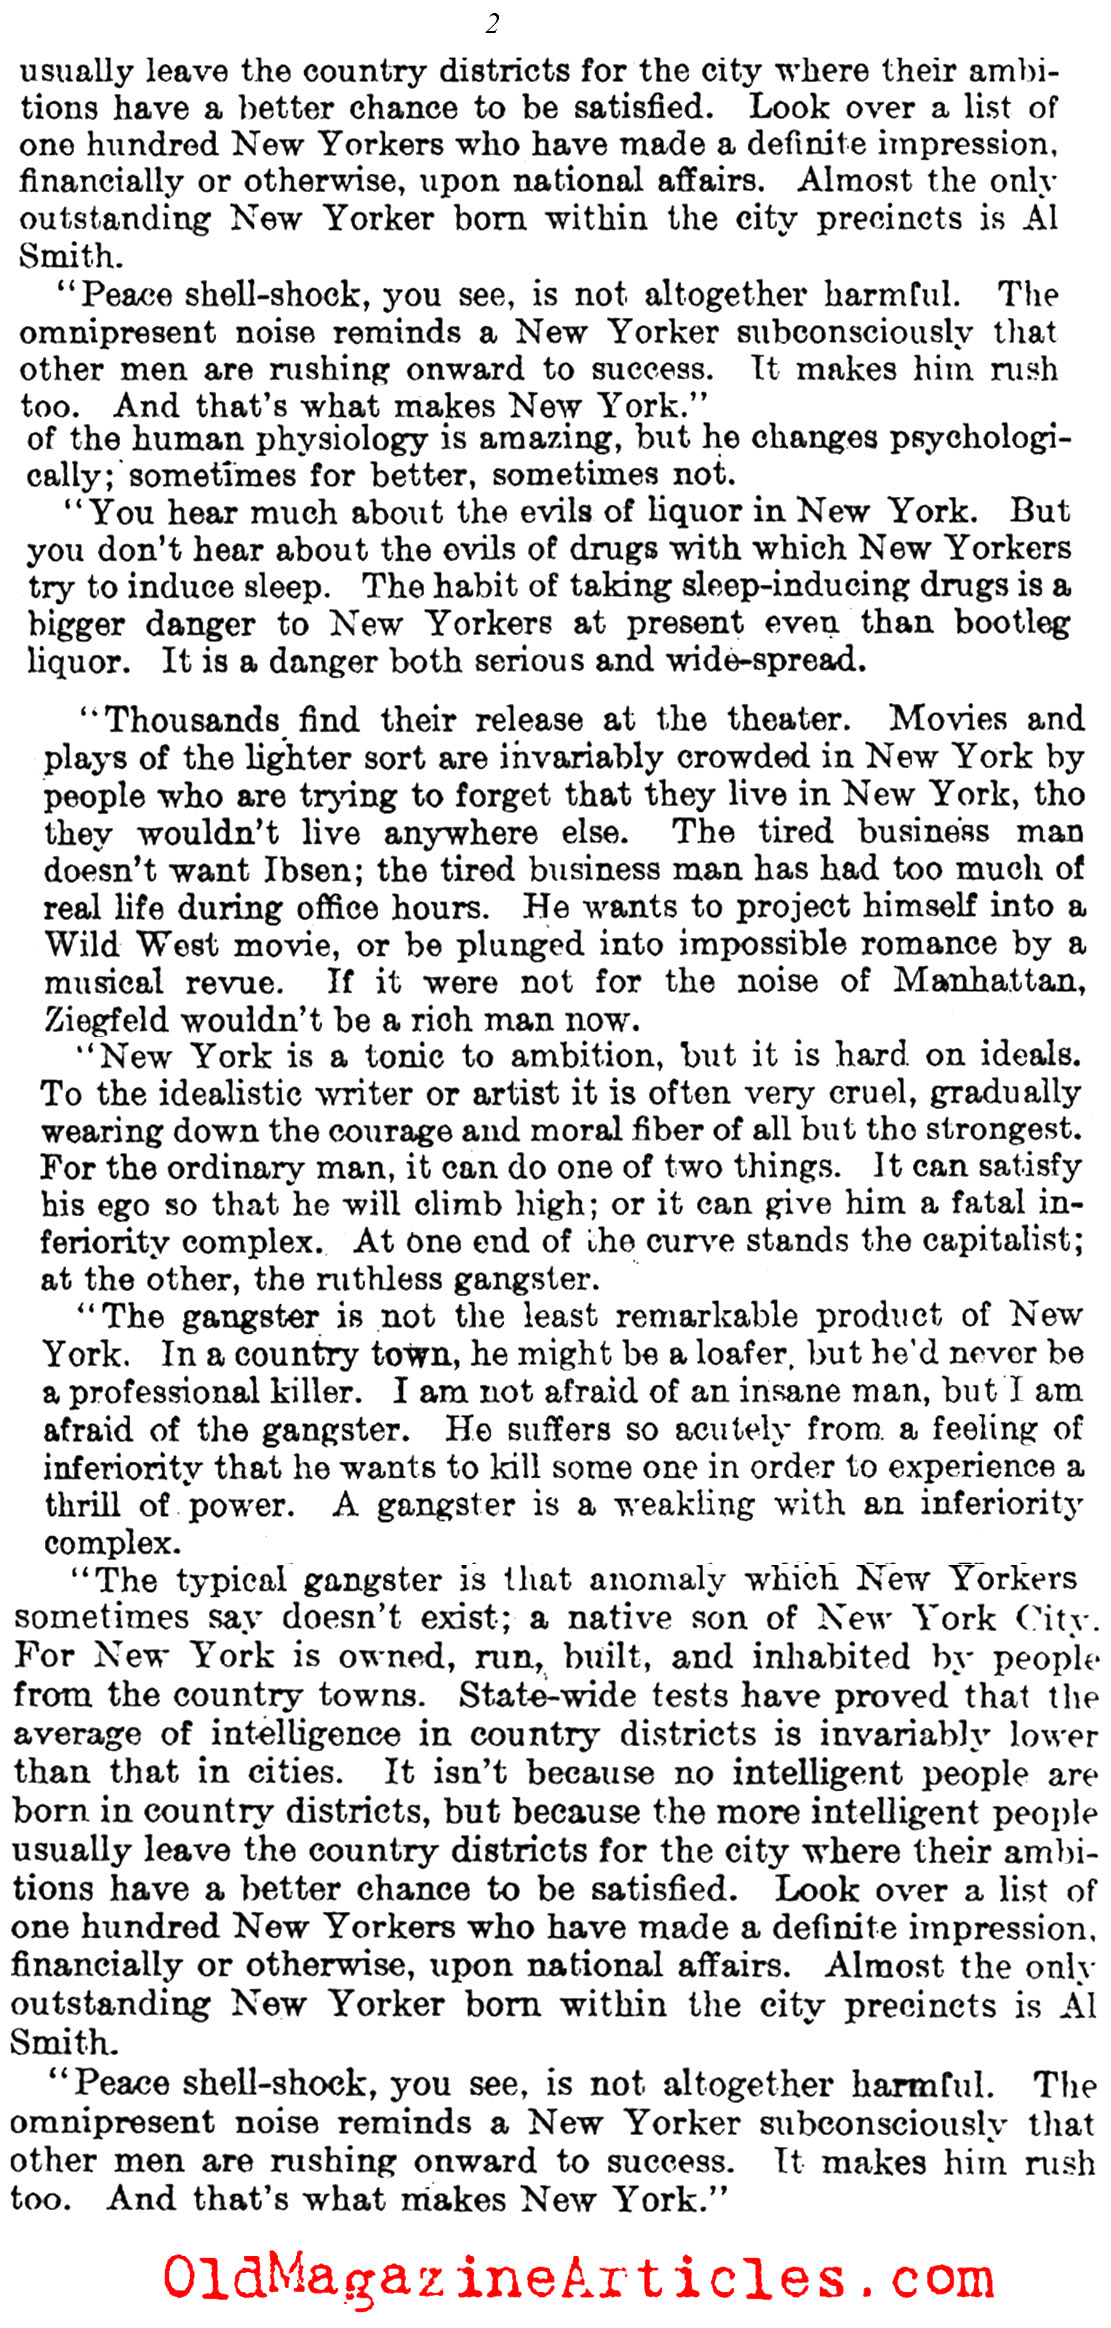 The Loud Noises of N.Y. (Literary Digest, 1929)